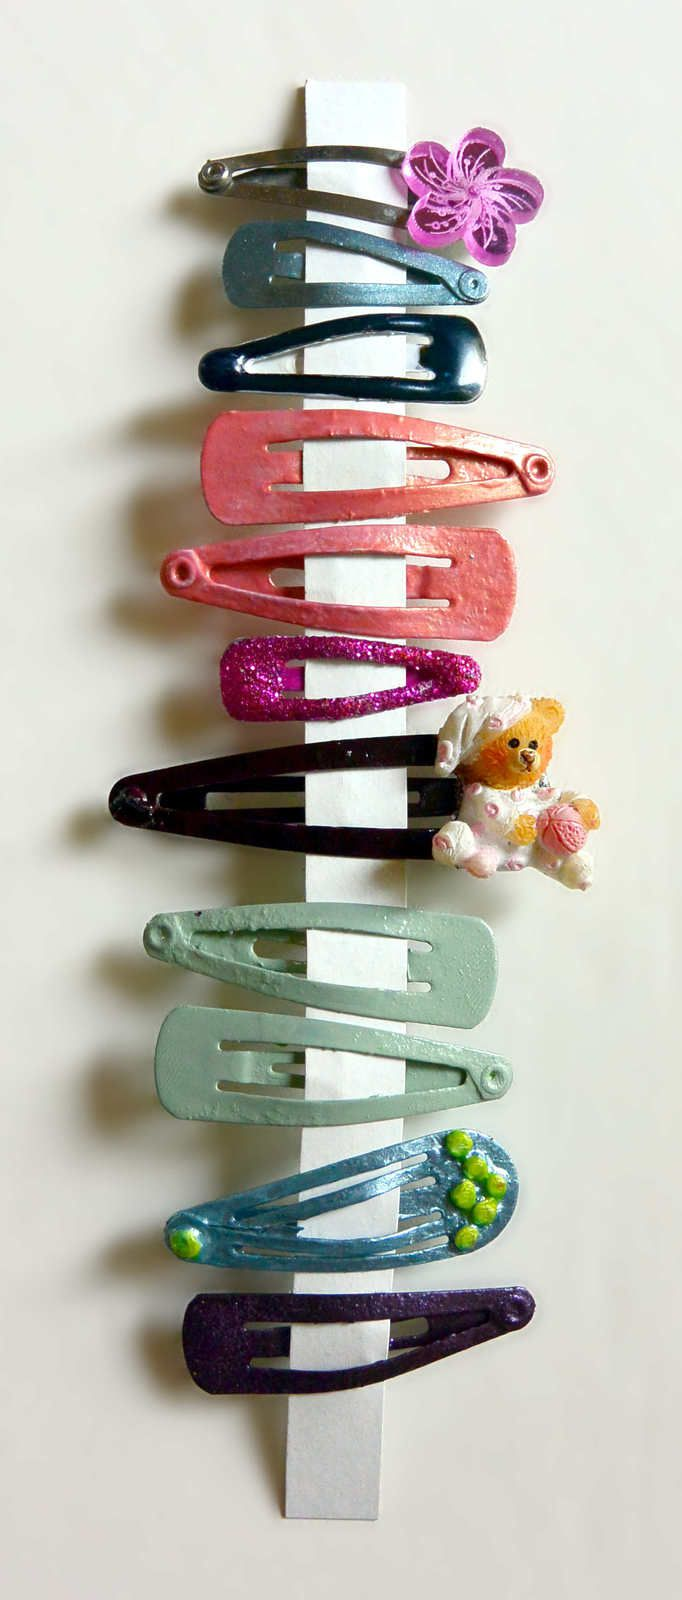 Lot de 11 petites barrettes fantaisies multicolores